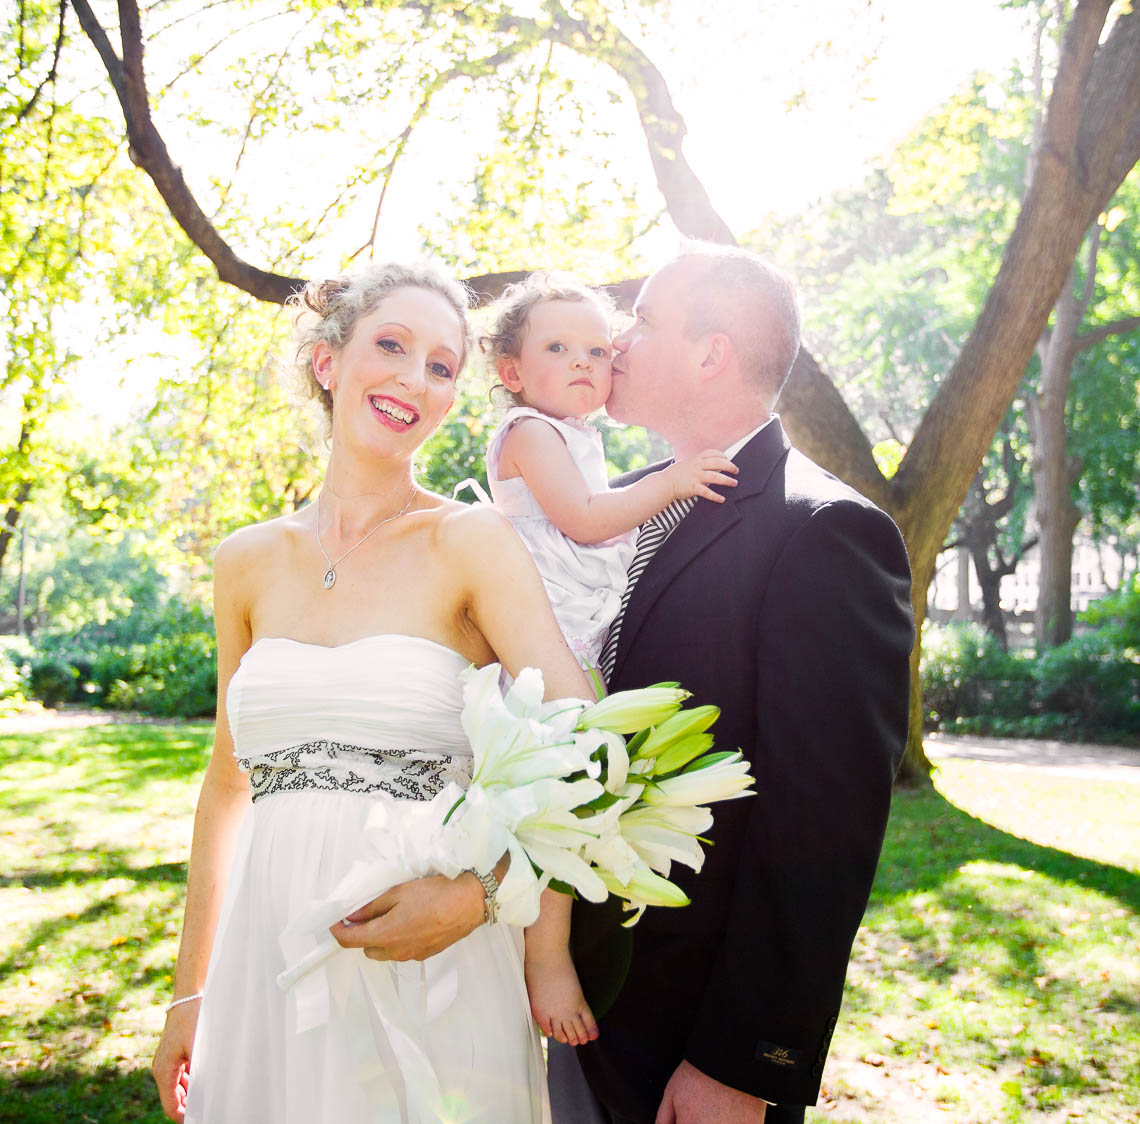 Spring Central Park Elope Wedding